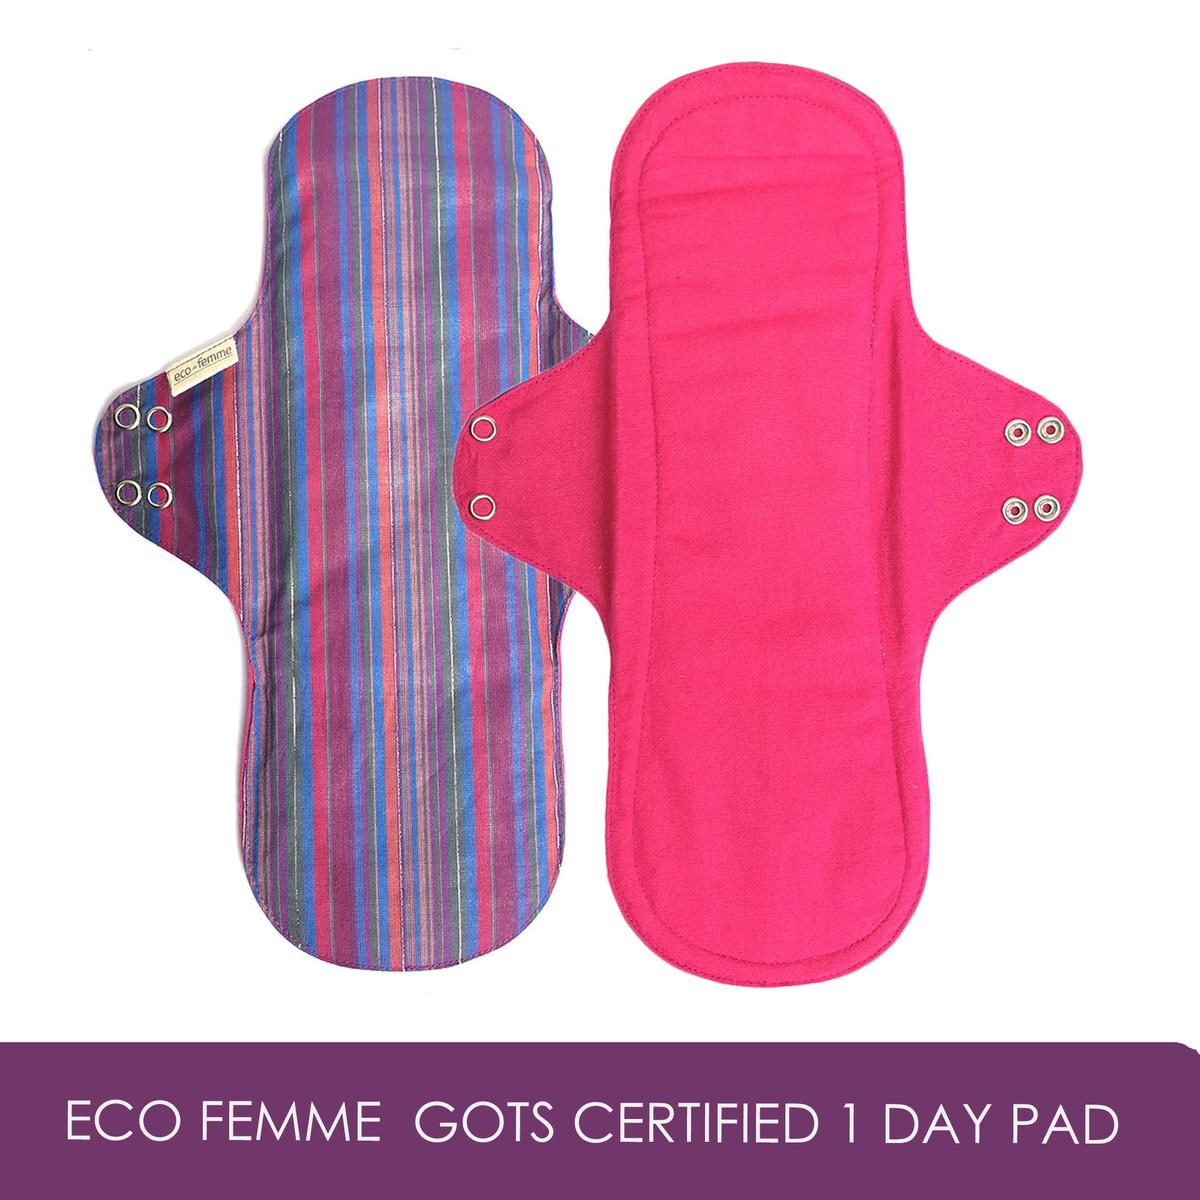 GOLI SODA - Eco Femme  GOTS Certified 1 Day Pad - Natural Organic - Reusable Sanitary Pads / Cloth Menstrual Pads / Washable Cloth Pads